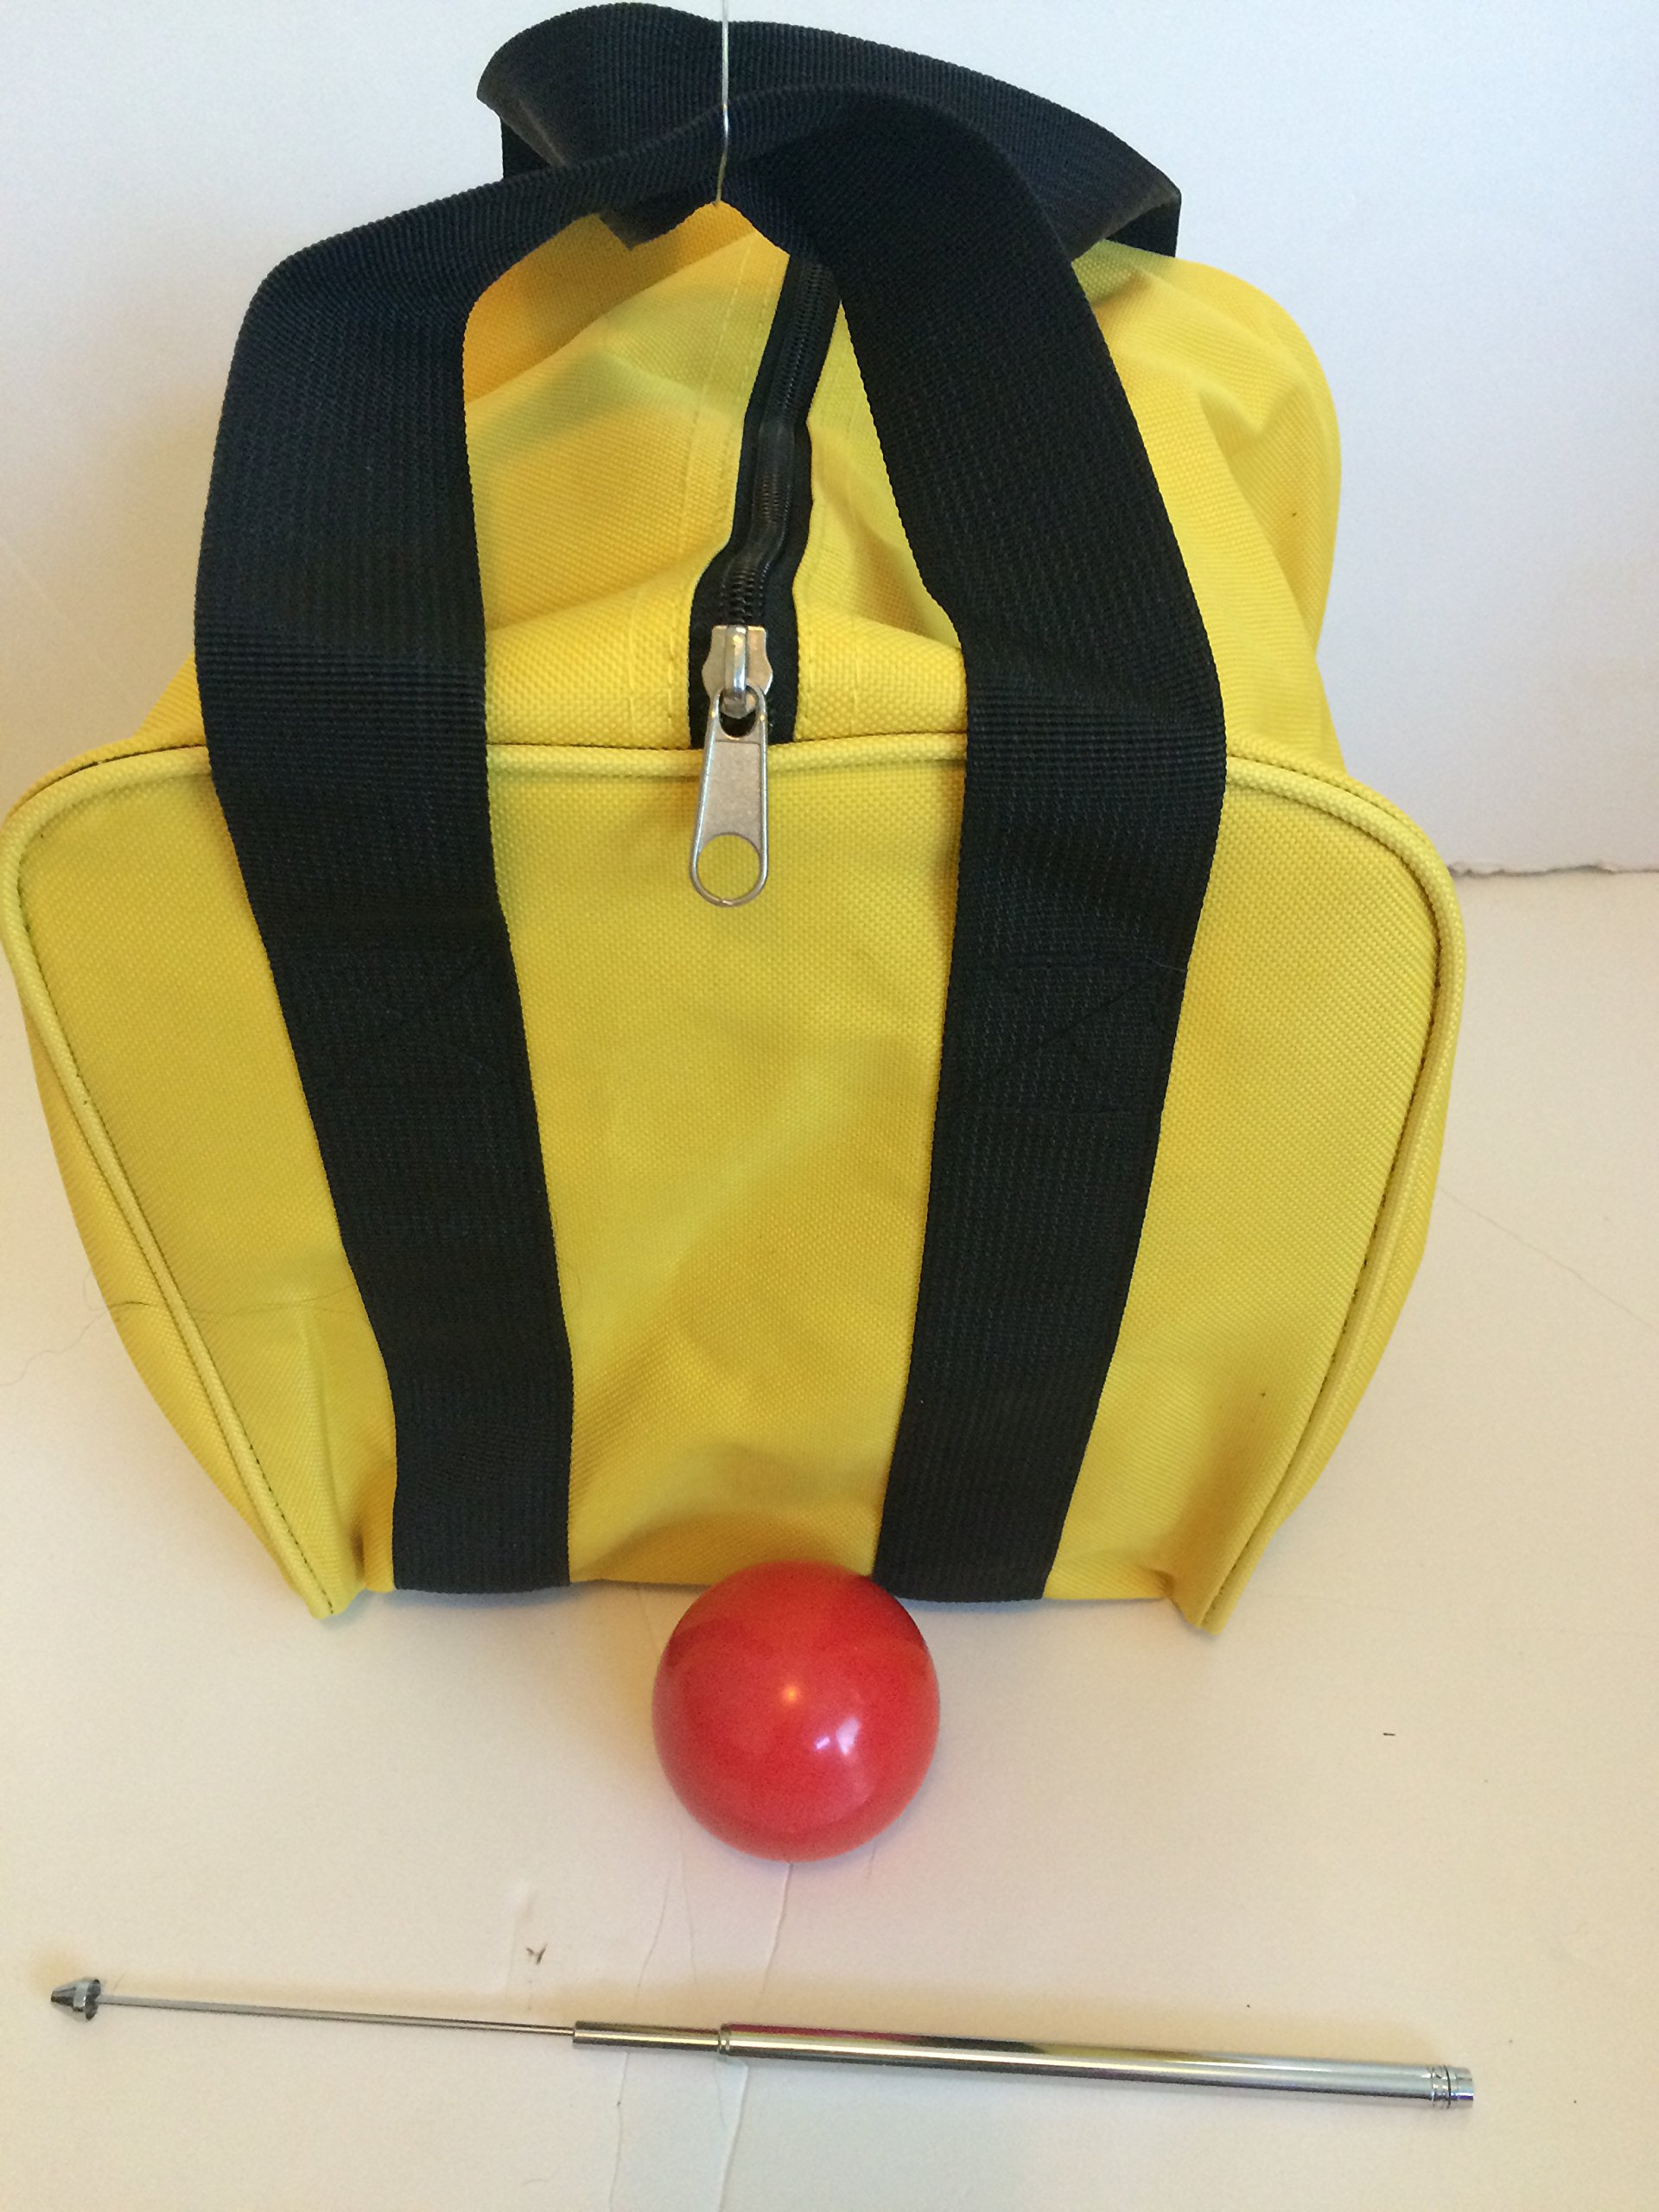 Unique Bocce Accessories Package - Extra Heavy Duty Nylon Bocce Bag (Yellow with Black Handles), red pallina, Extendable Measuring Device